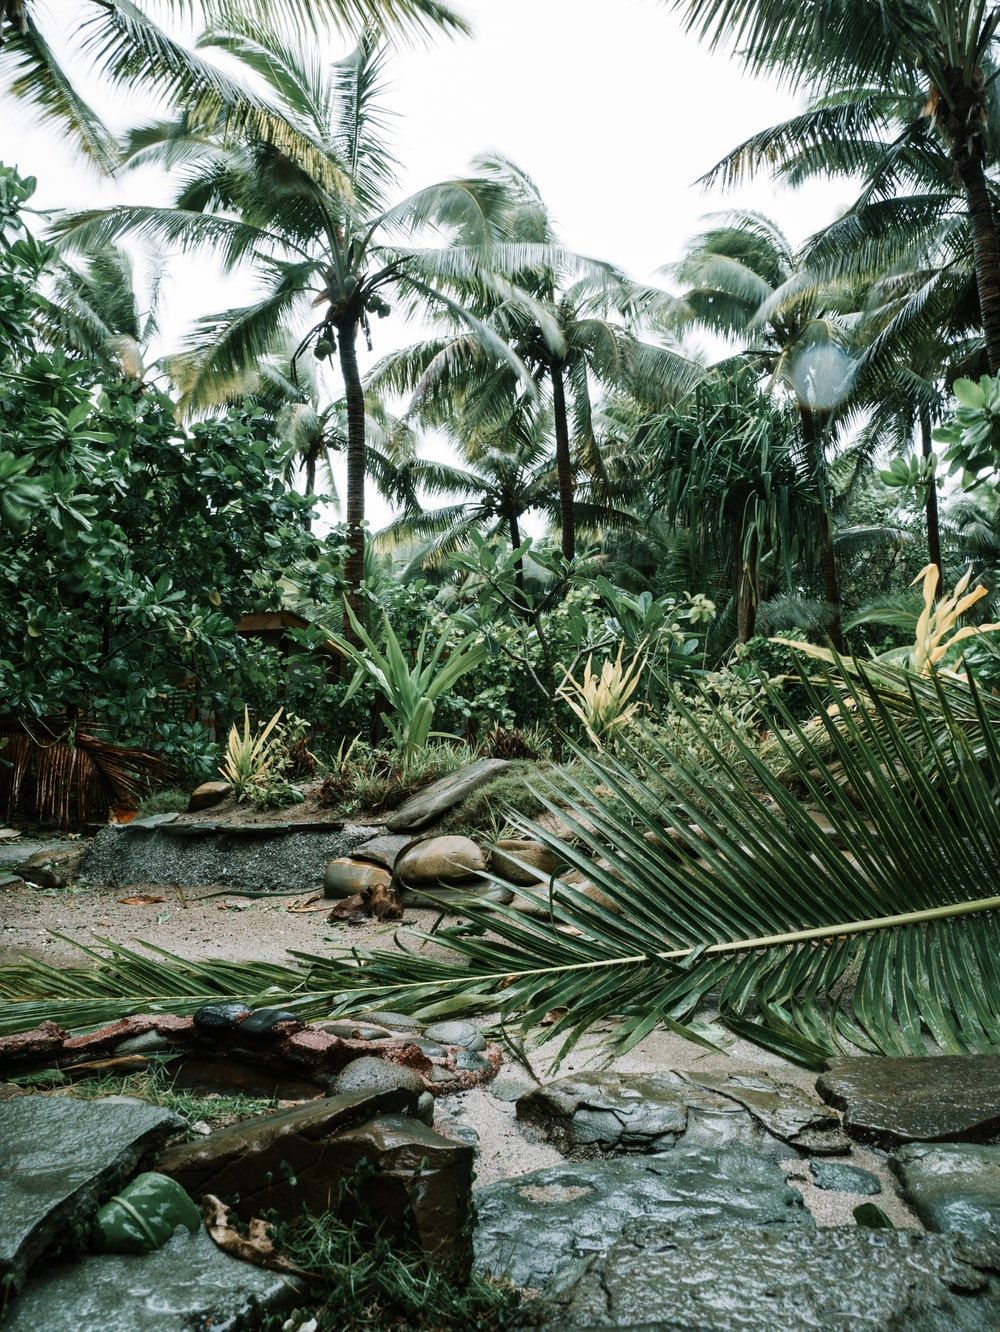 green coconut palm tree on brown soil